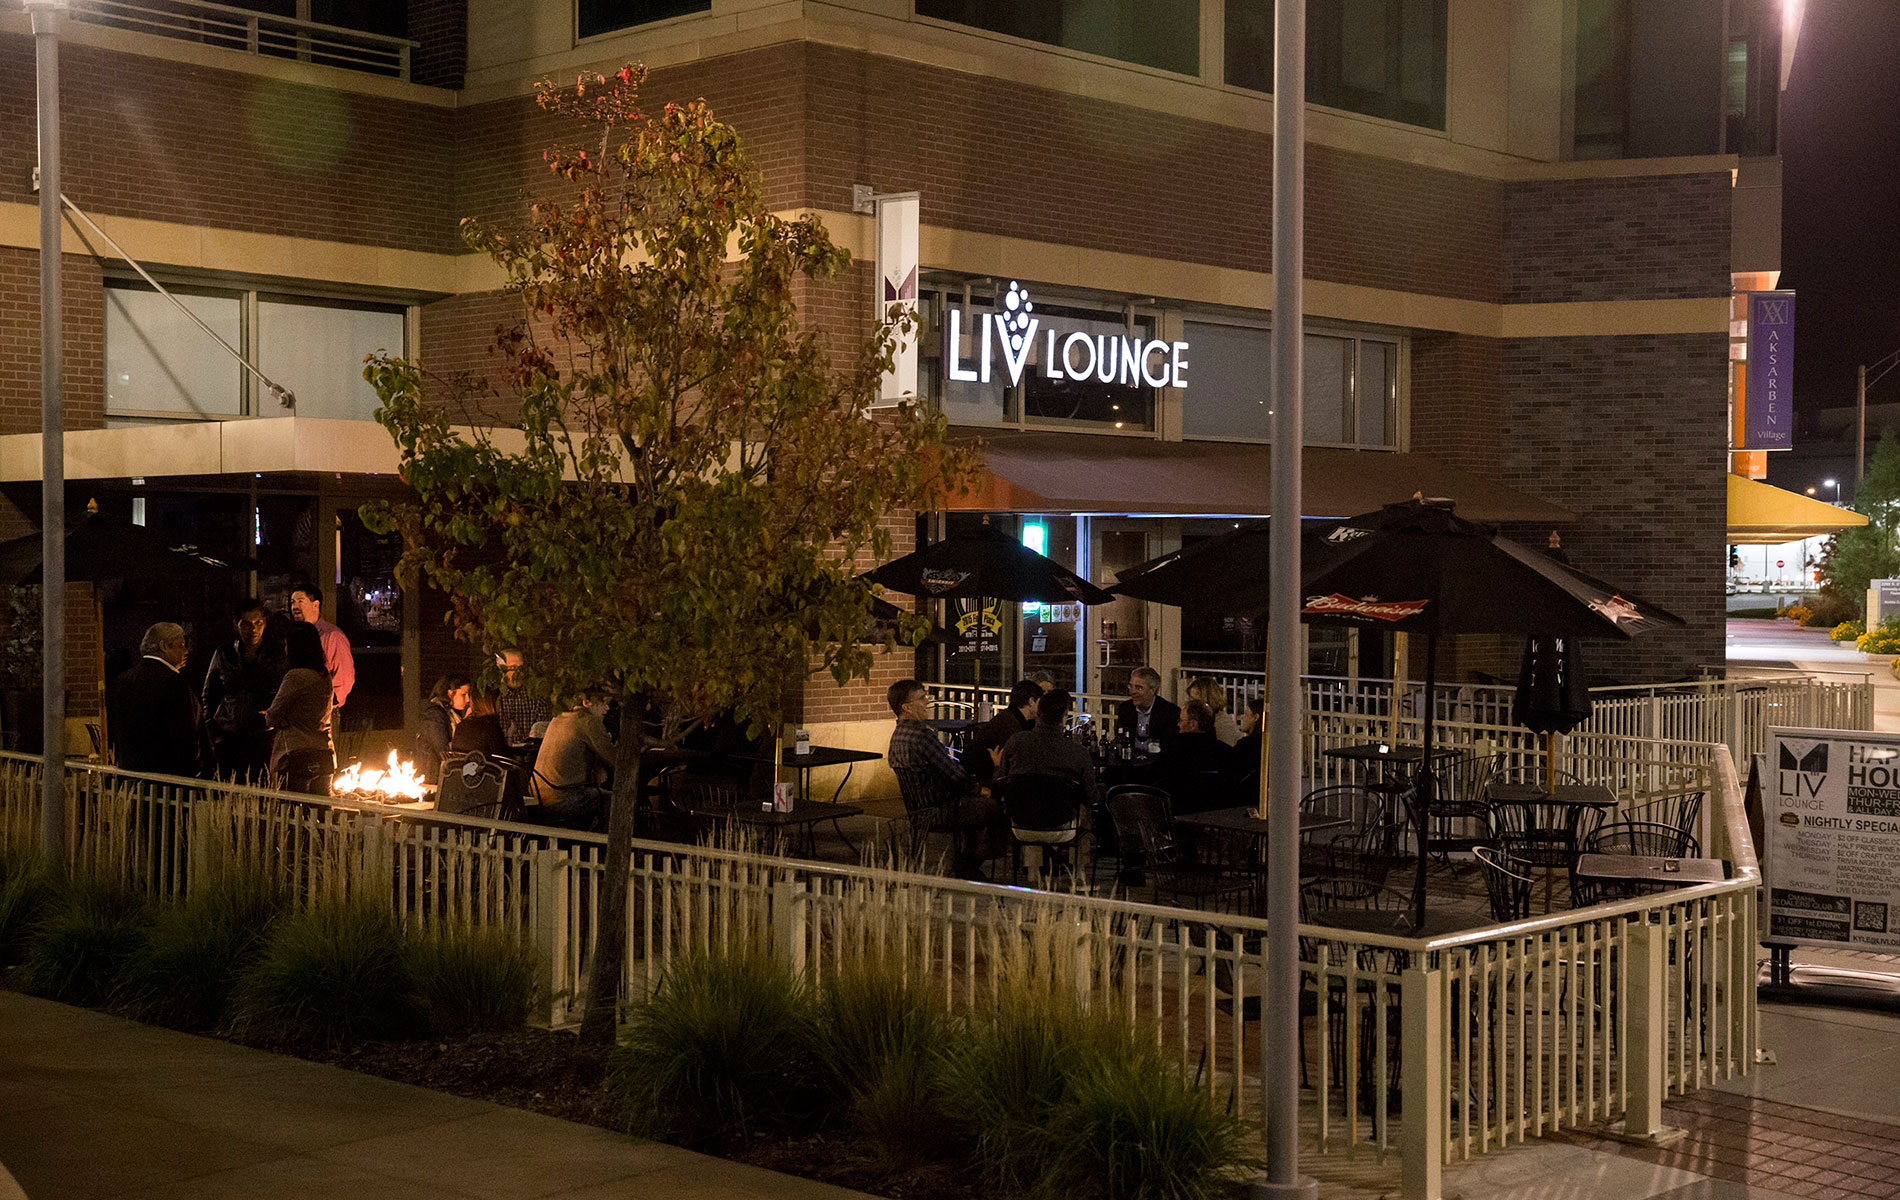 The LIV Lounge Patio